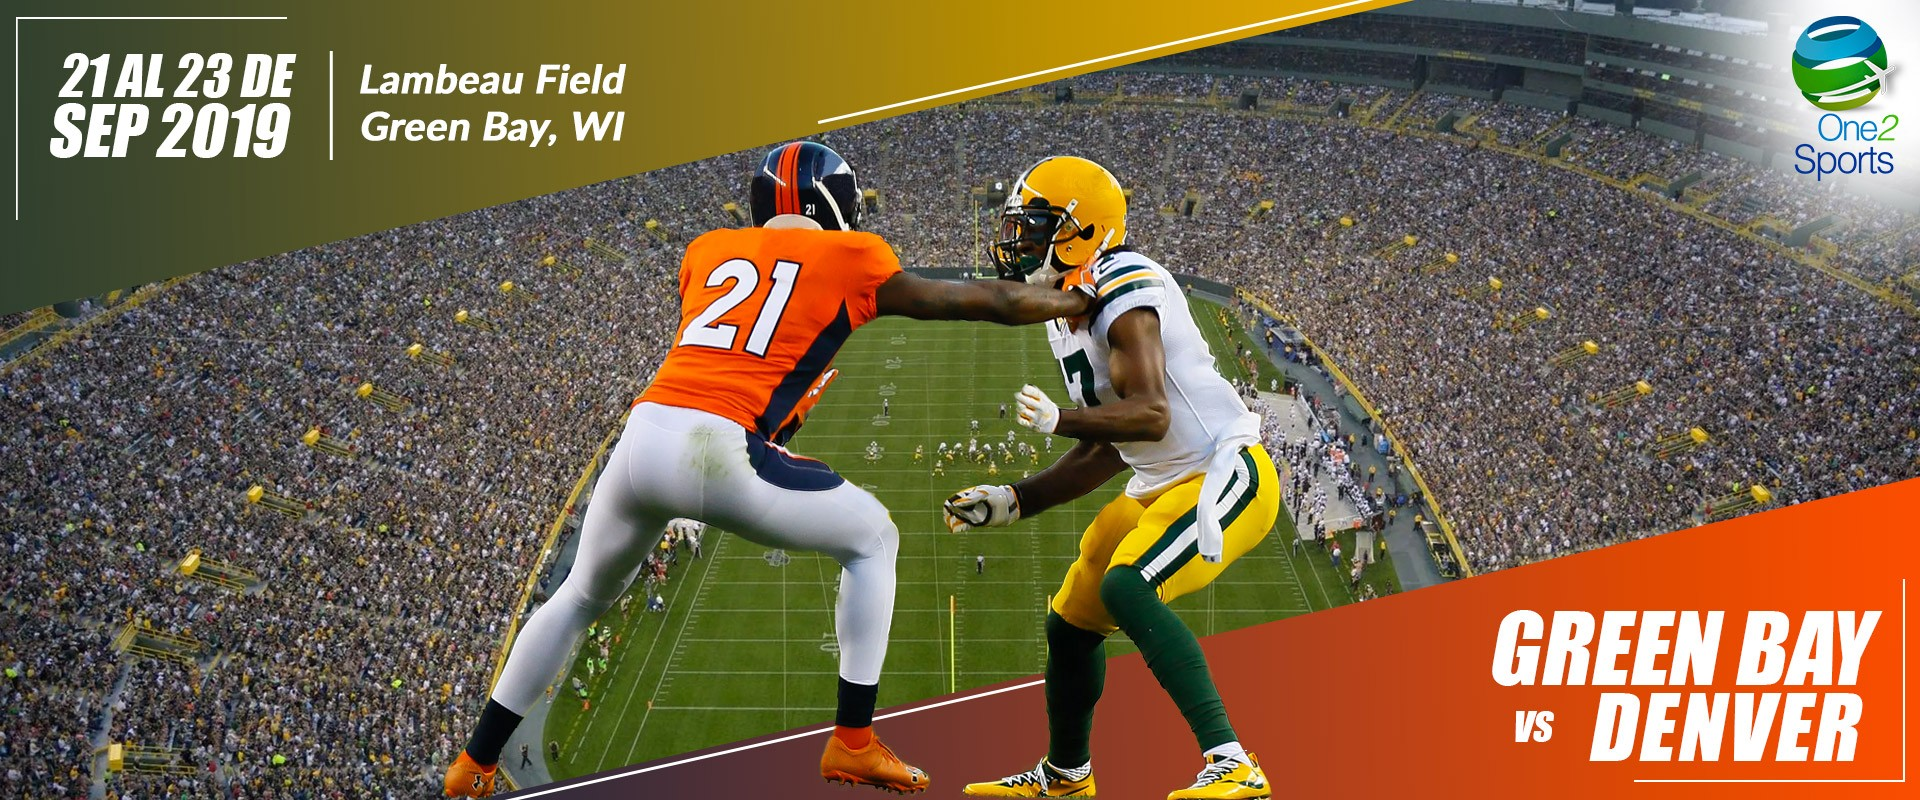 Green Bay vs Denver